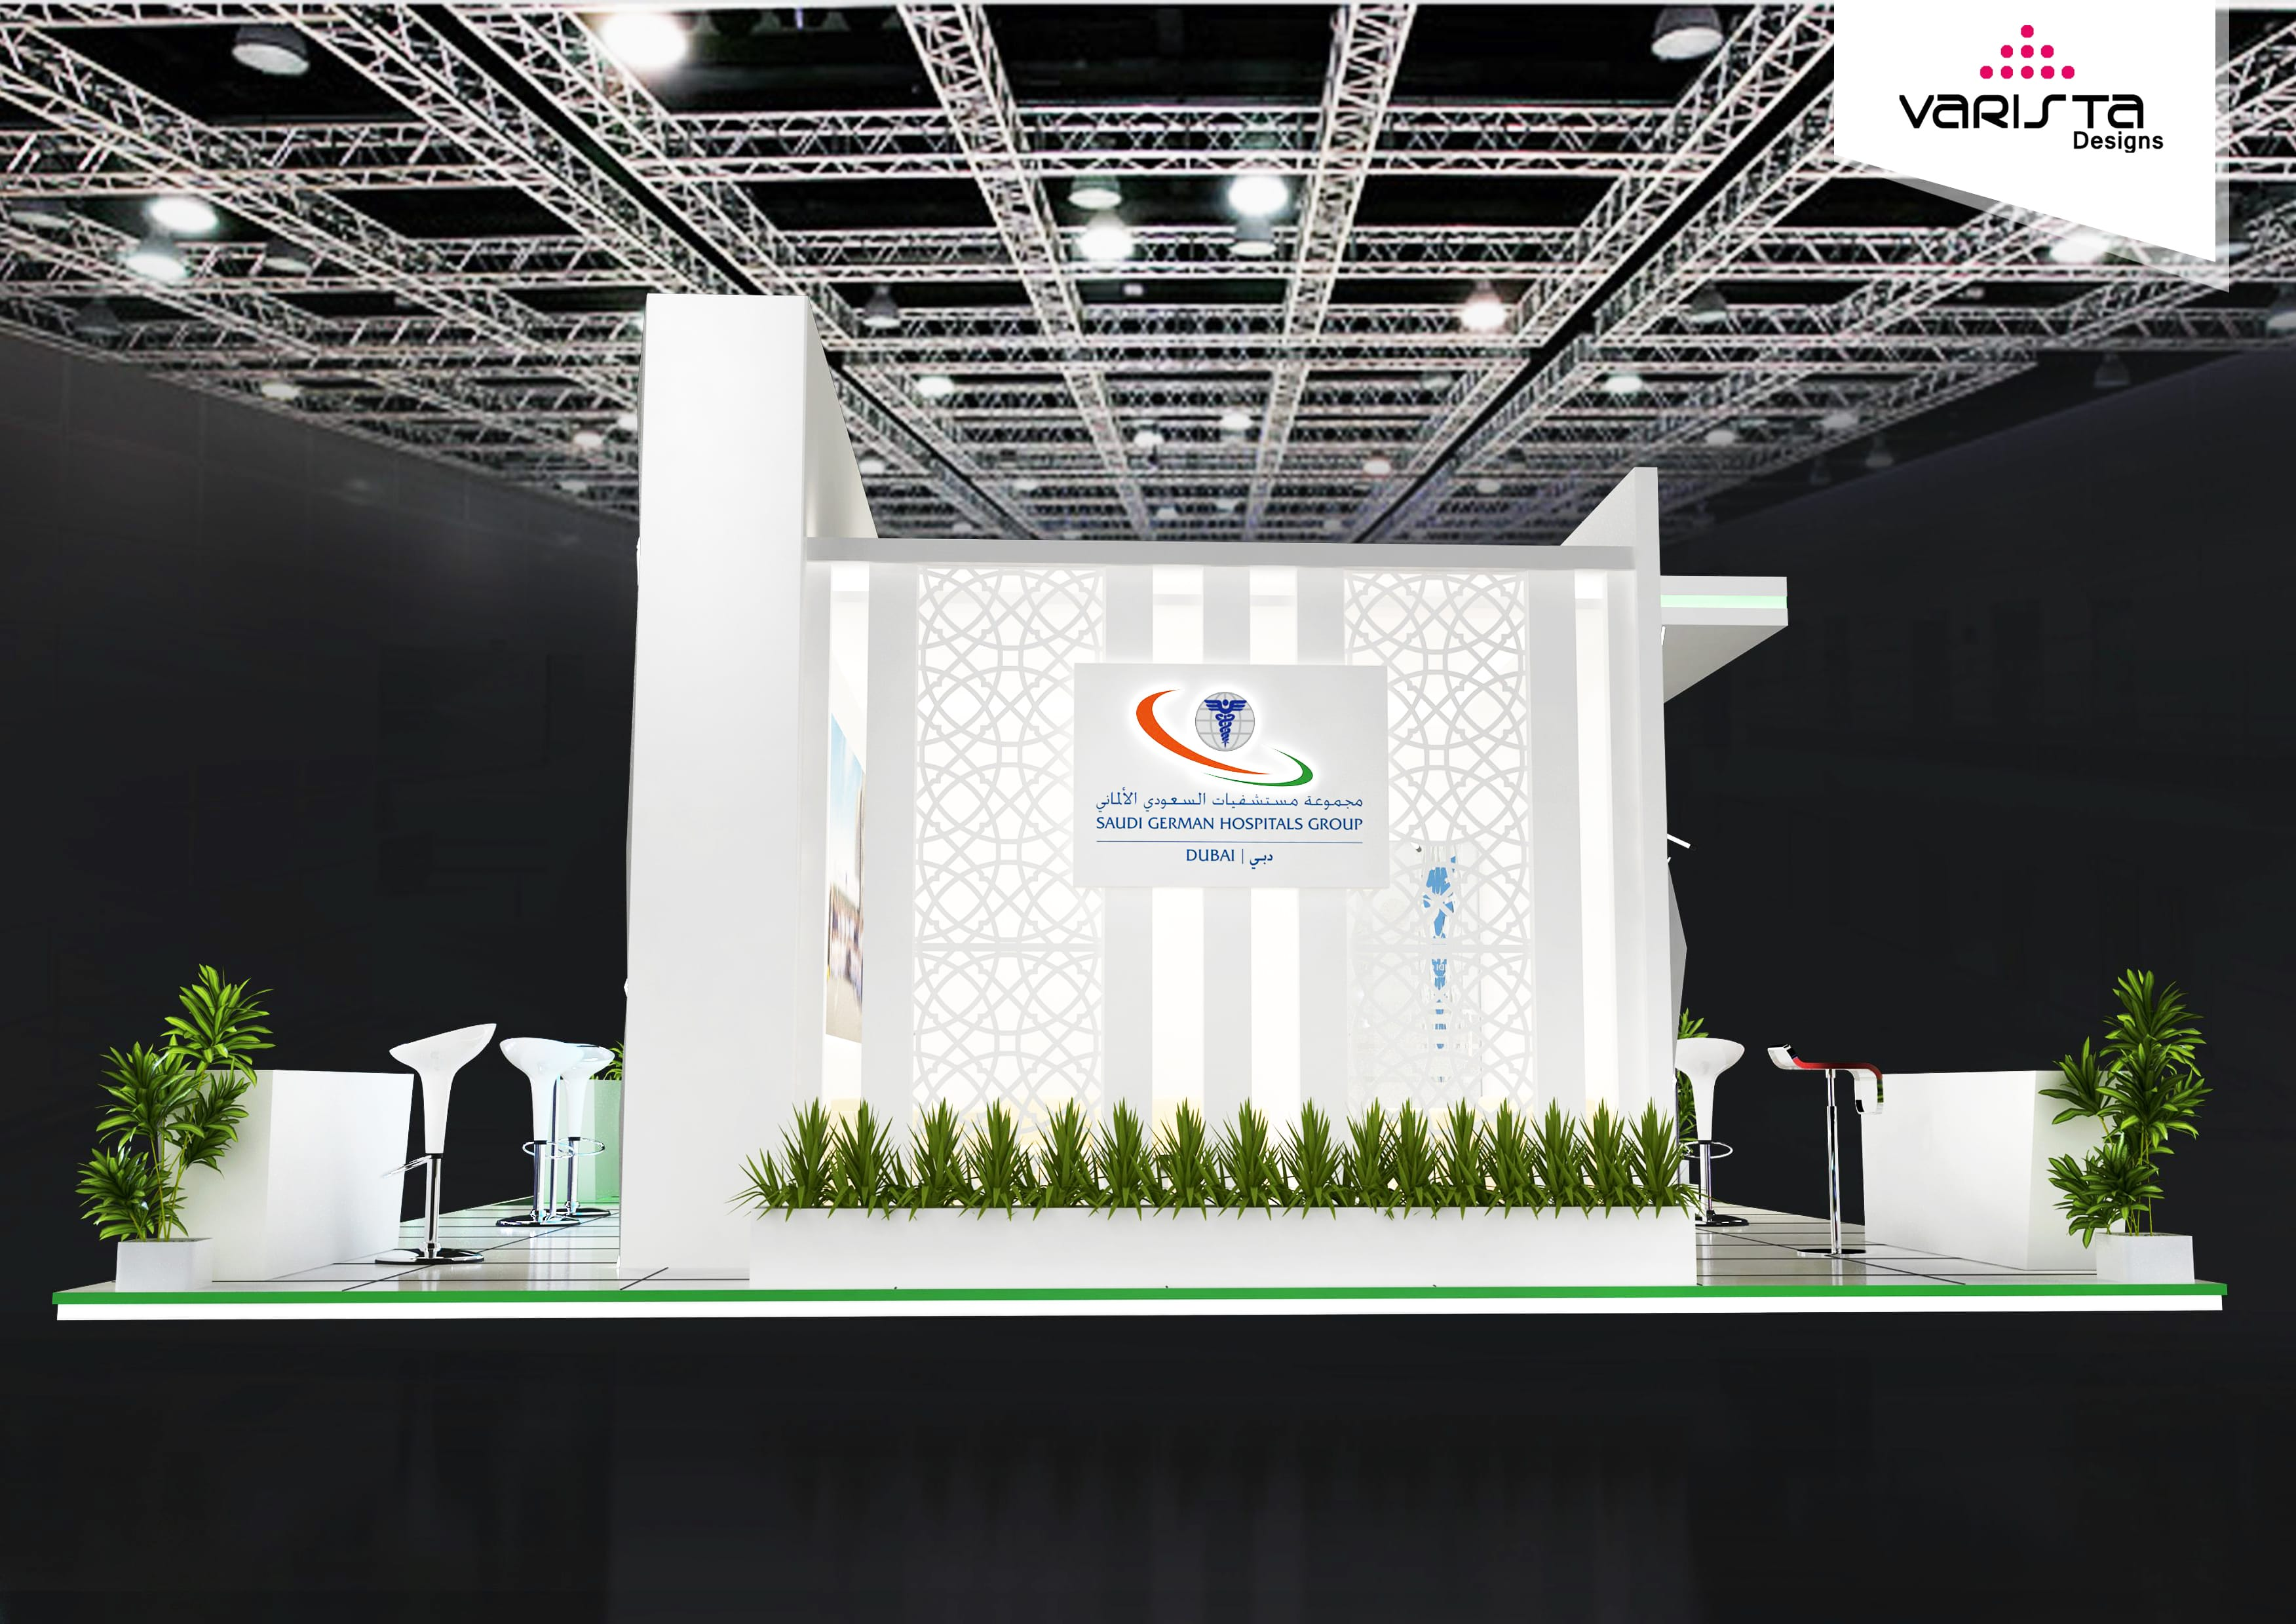 Saudi German hospital exhibition stand at Arab health dubai